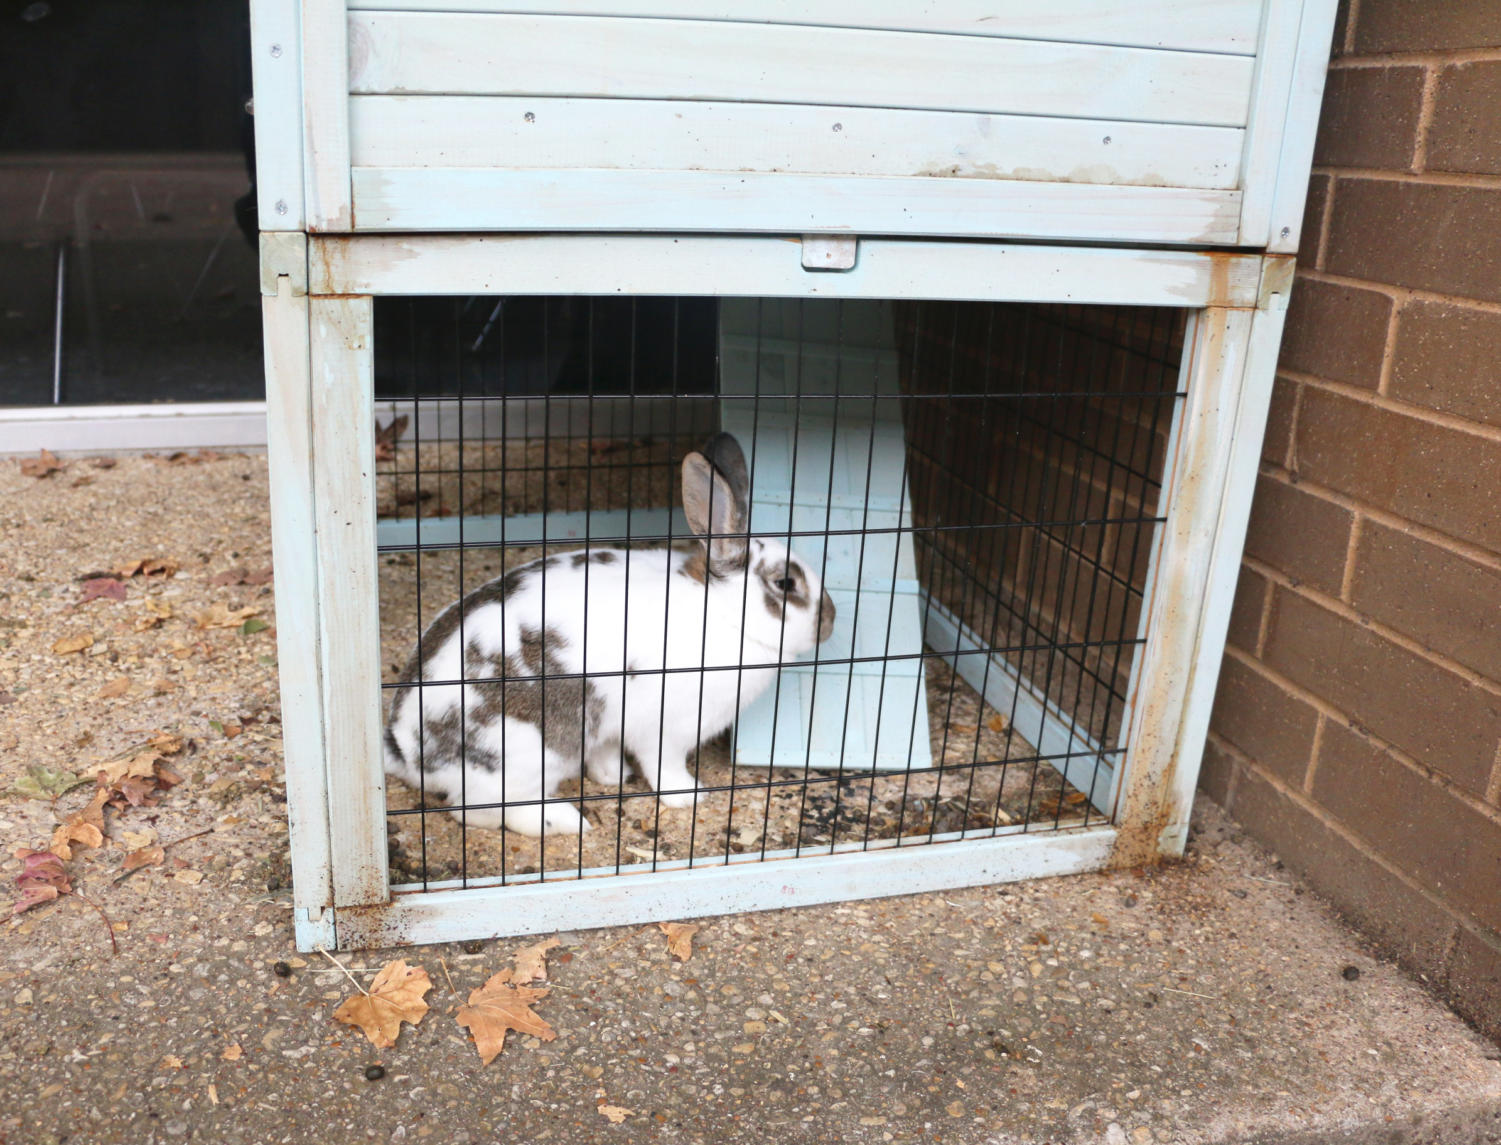 ALL+EARS%21%3A+A+bunny+that+belongs+to+the+small+animal+management+program%2C+rests+in+his+cage+Nov.+9+outside+room+918.+Agriculture+teacher+Keith+Gray%2C+who+was+born+on+a+farm%2C+said+students+take+the+bunny+home+to+learn+how+to+care+for+the+animal+and+he+takes+the+bunny+home+over+the+summer.+%E2%80%9CThough+I+like+to+joke+around+with+the+students+about+eating+the+bunny+as+stew%2C%E2%80%9D+he+said.+%E2%80%9CWhen+they+ask+what+is+going+to+happen+to+the+bunny.%E2%80%9D+